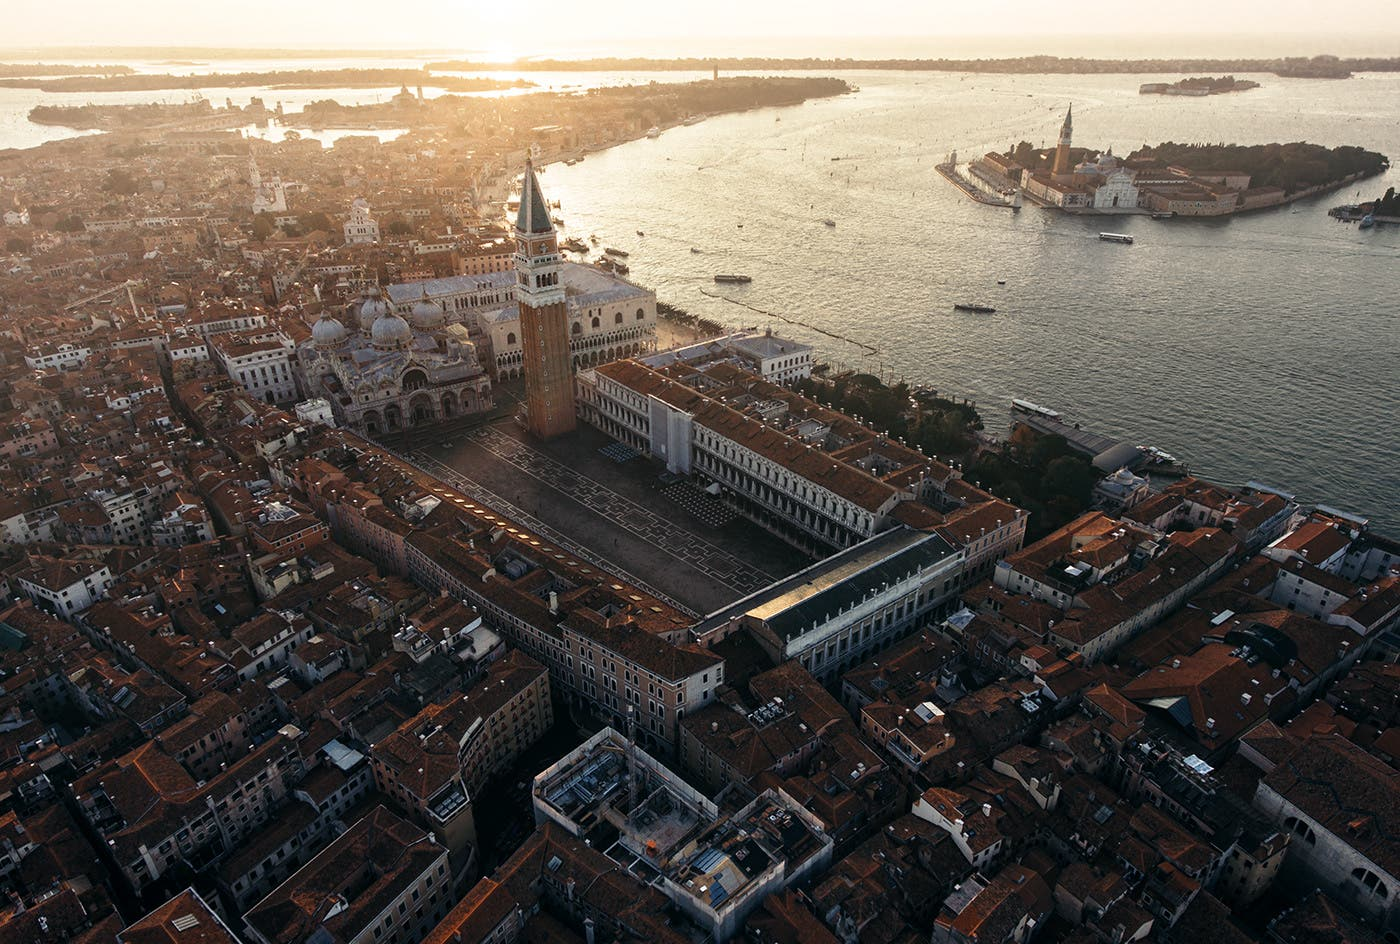 Dimitar Karanikolov's Photos of Venice from Above Will Charm You